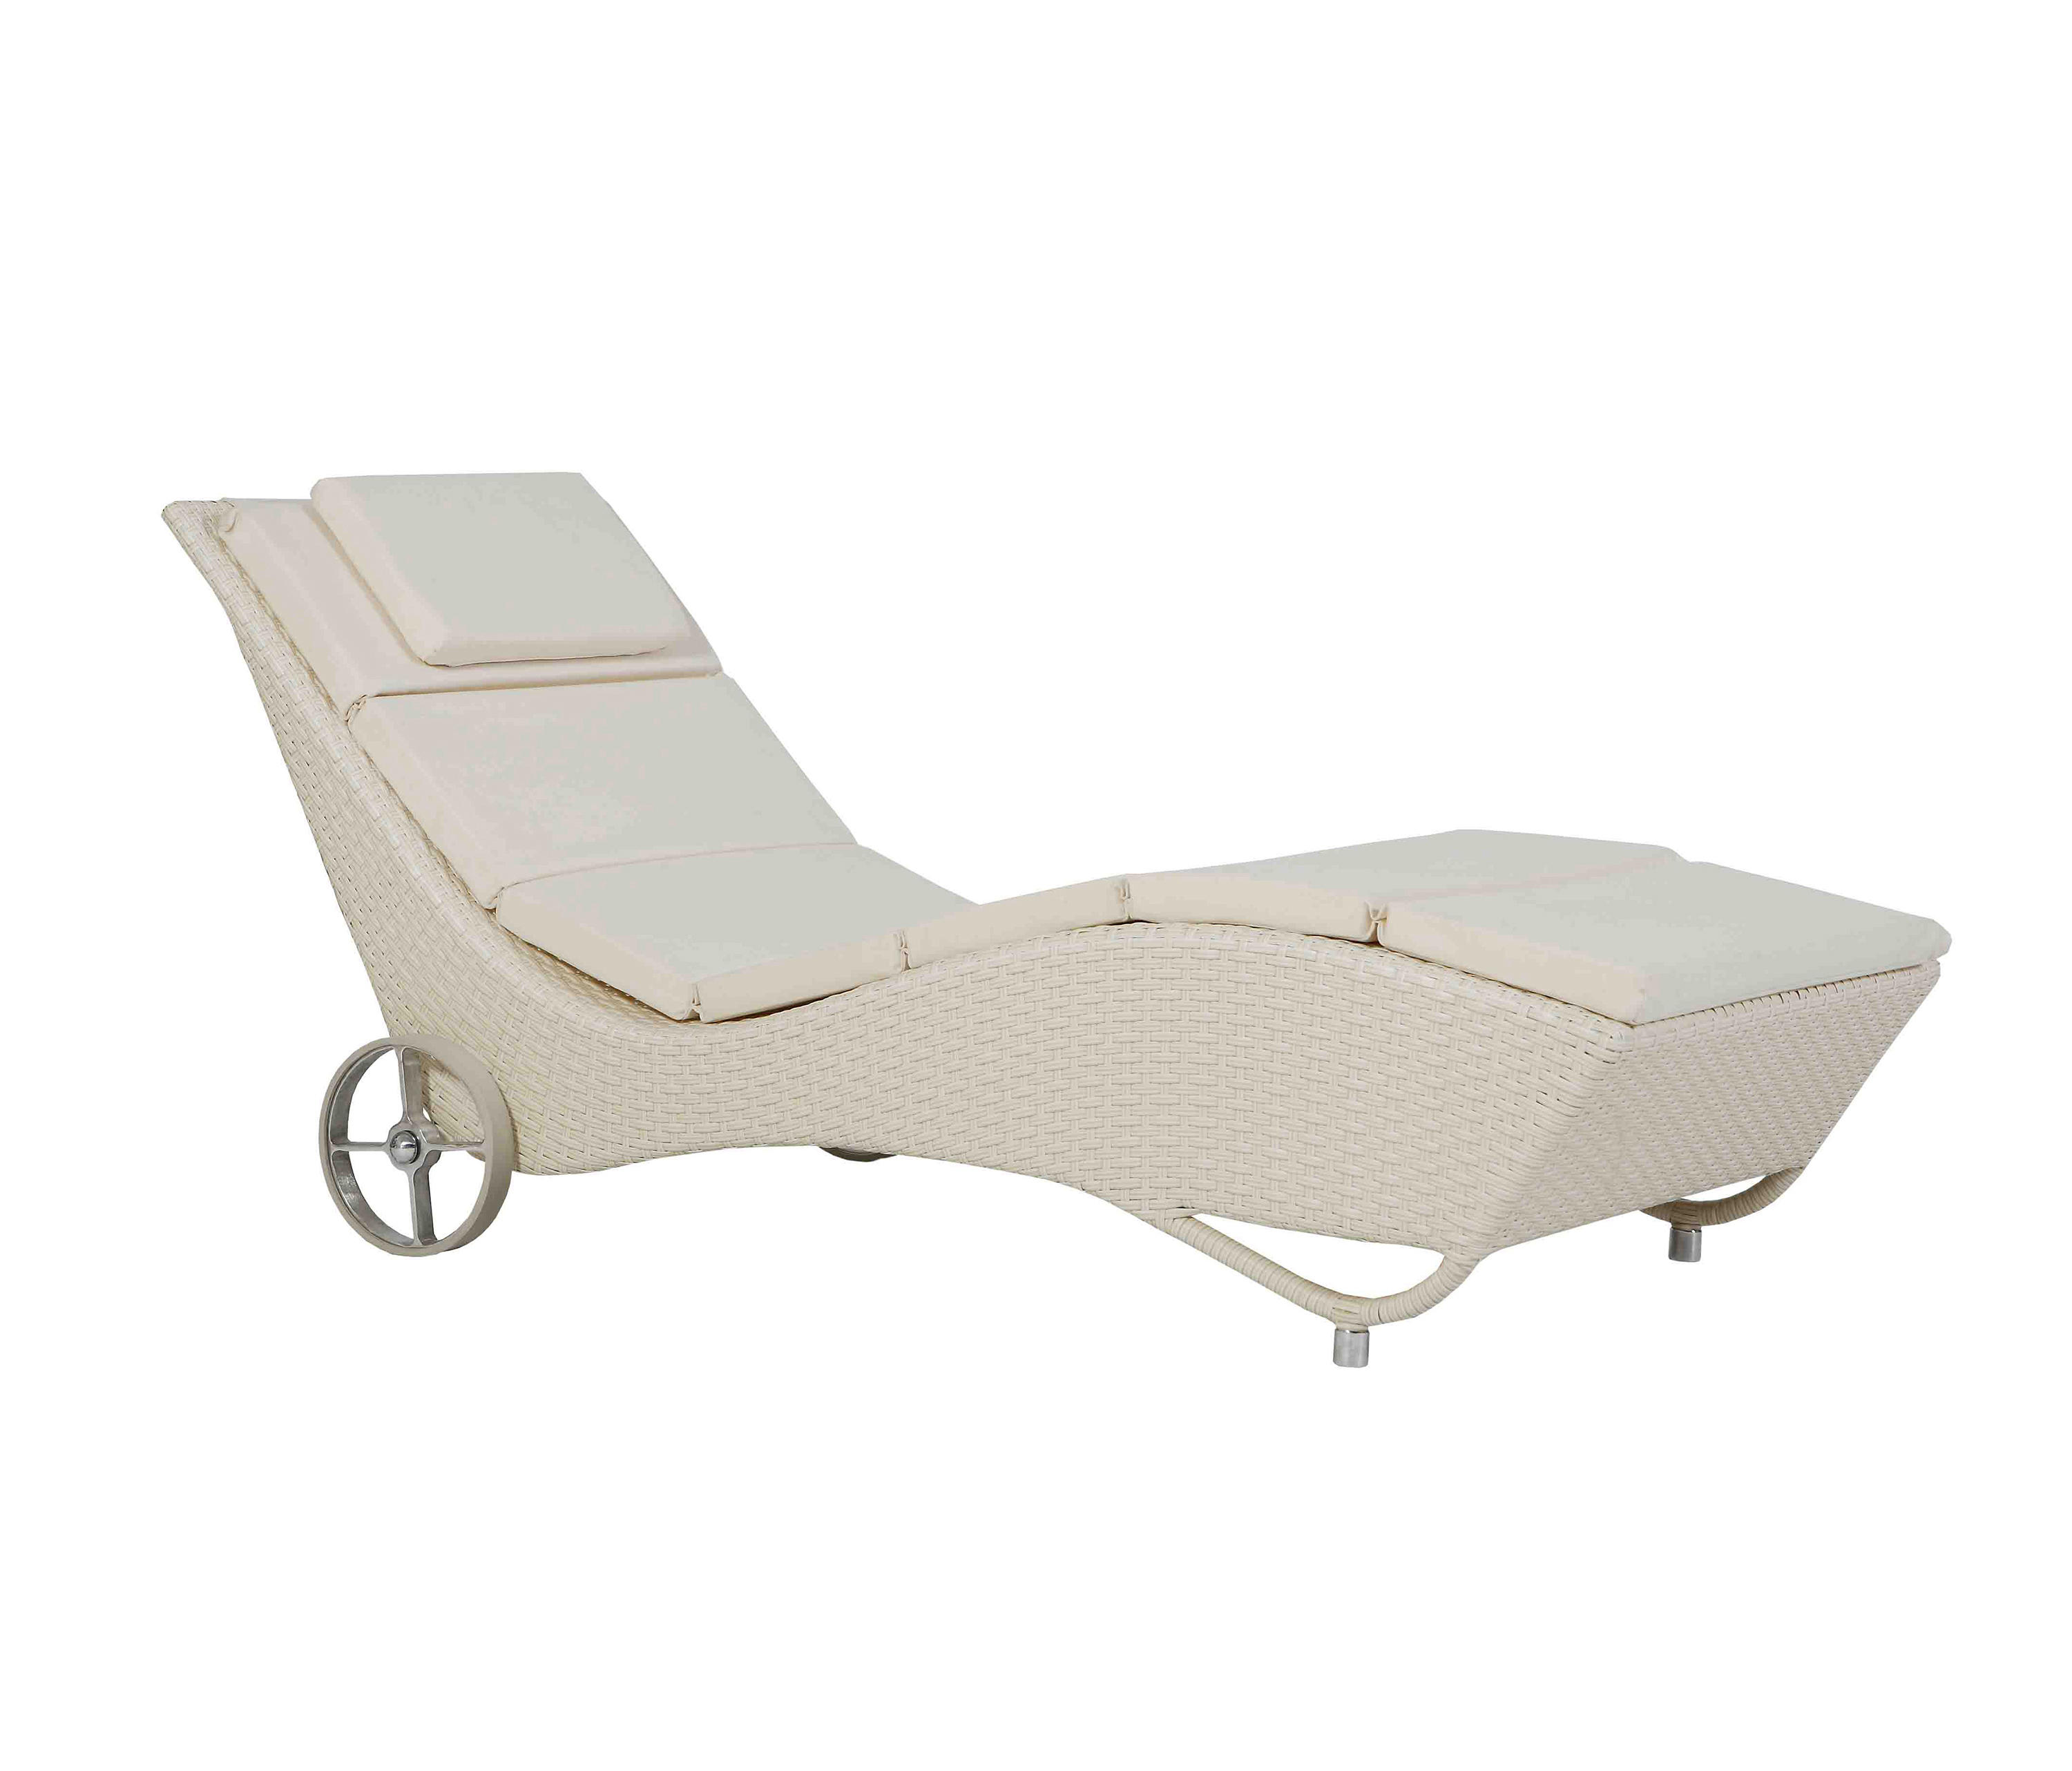 La Chaise Longue Catalogue Delfino Chaise Longue Sun Loungers From Atmosphera Architonic